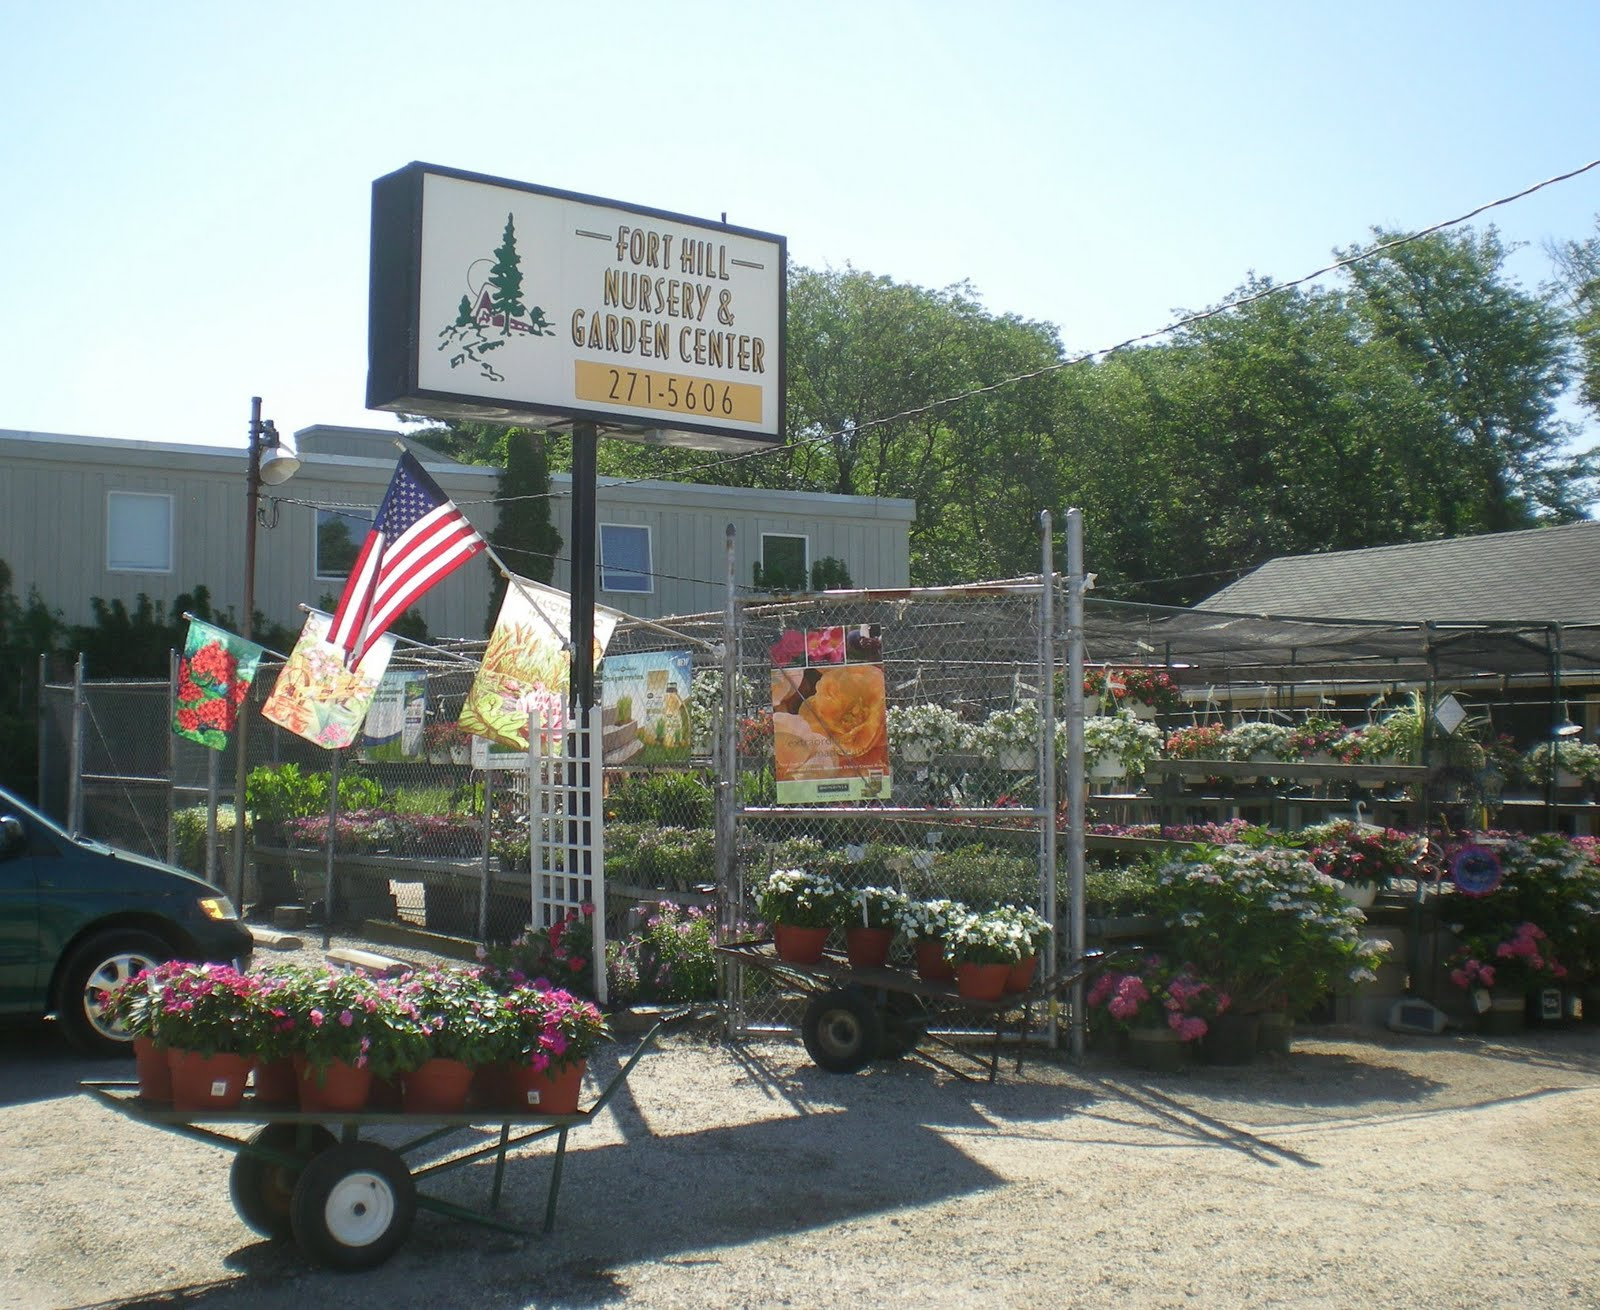 Instead He Offered Me The Chance To Contribute Text, History, And Photos.  We Decided To Explore The Survival Ability Of My Local Garden Centers.